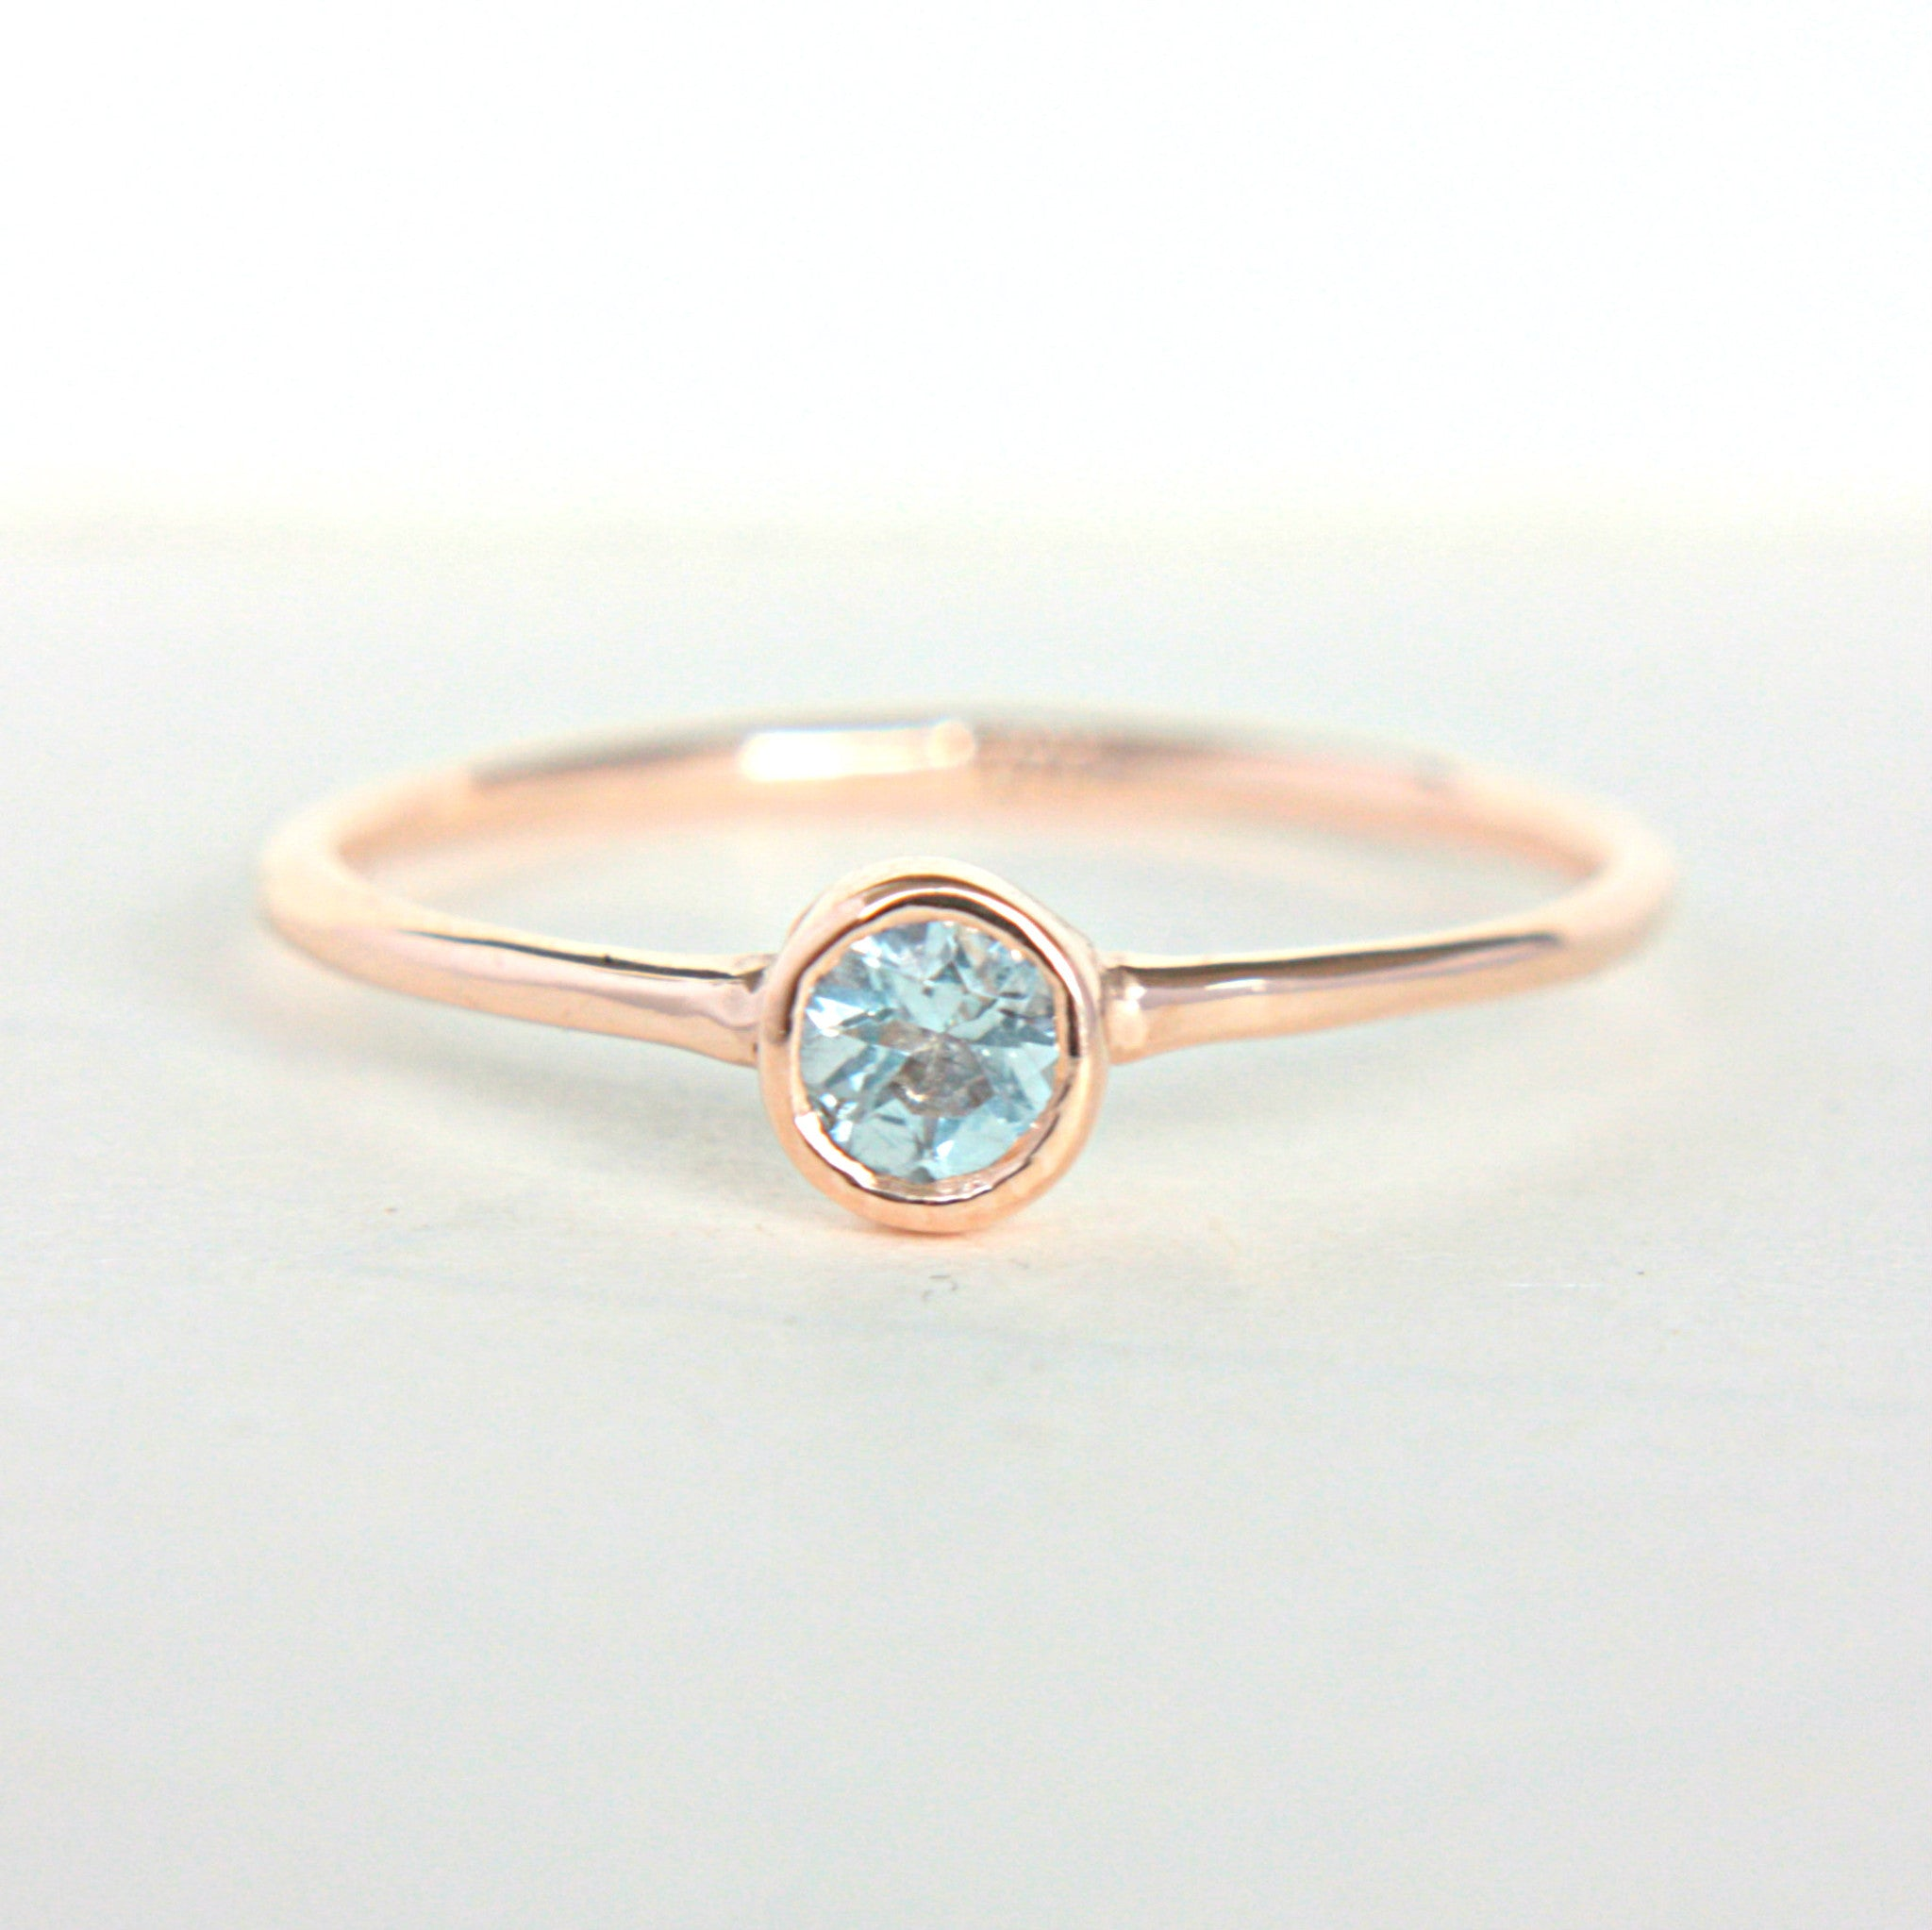 Aquamarine 14k Gold Ring - Manari.eu